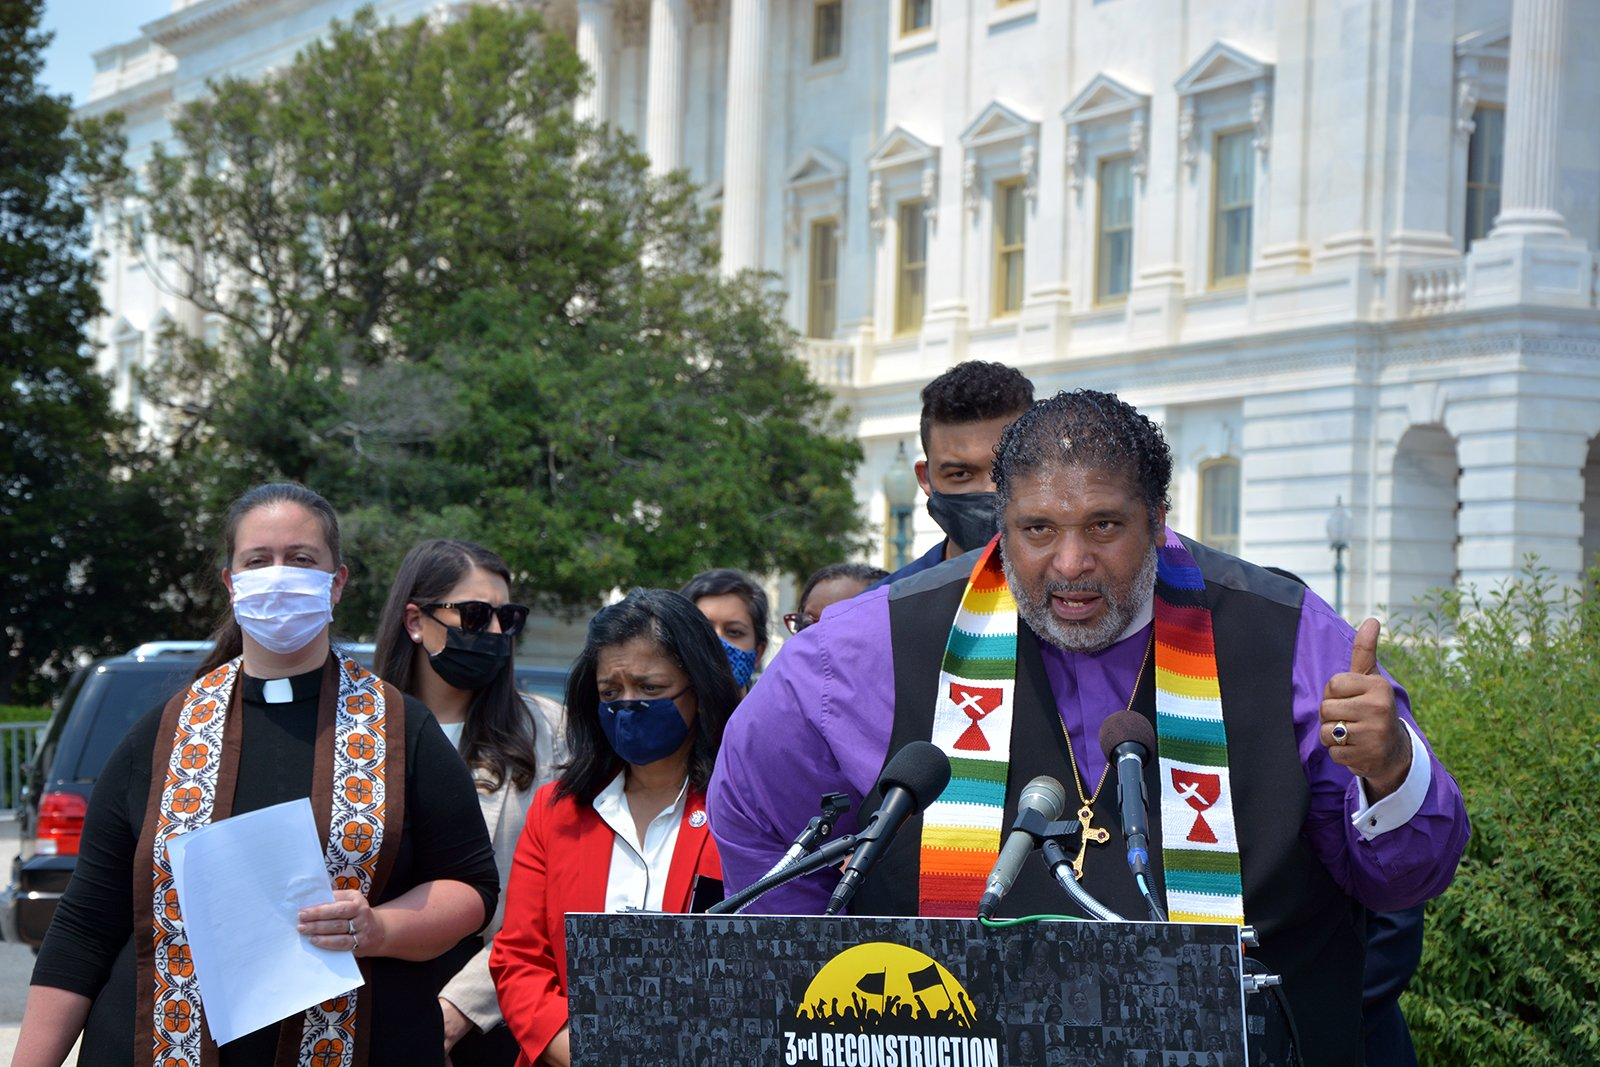 """Poor People's Campaign co-chair the Rev. William Barber speaks during the announcement of a new resolution titled """"Third Reconstruction: Fully Addressing Poverty and Low Wages from the Bottom Up,"""" Thursday, May 20, 2021, on Capitol Hill in Washington. RNS photo by Jack Jenkins"""